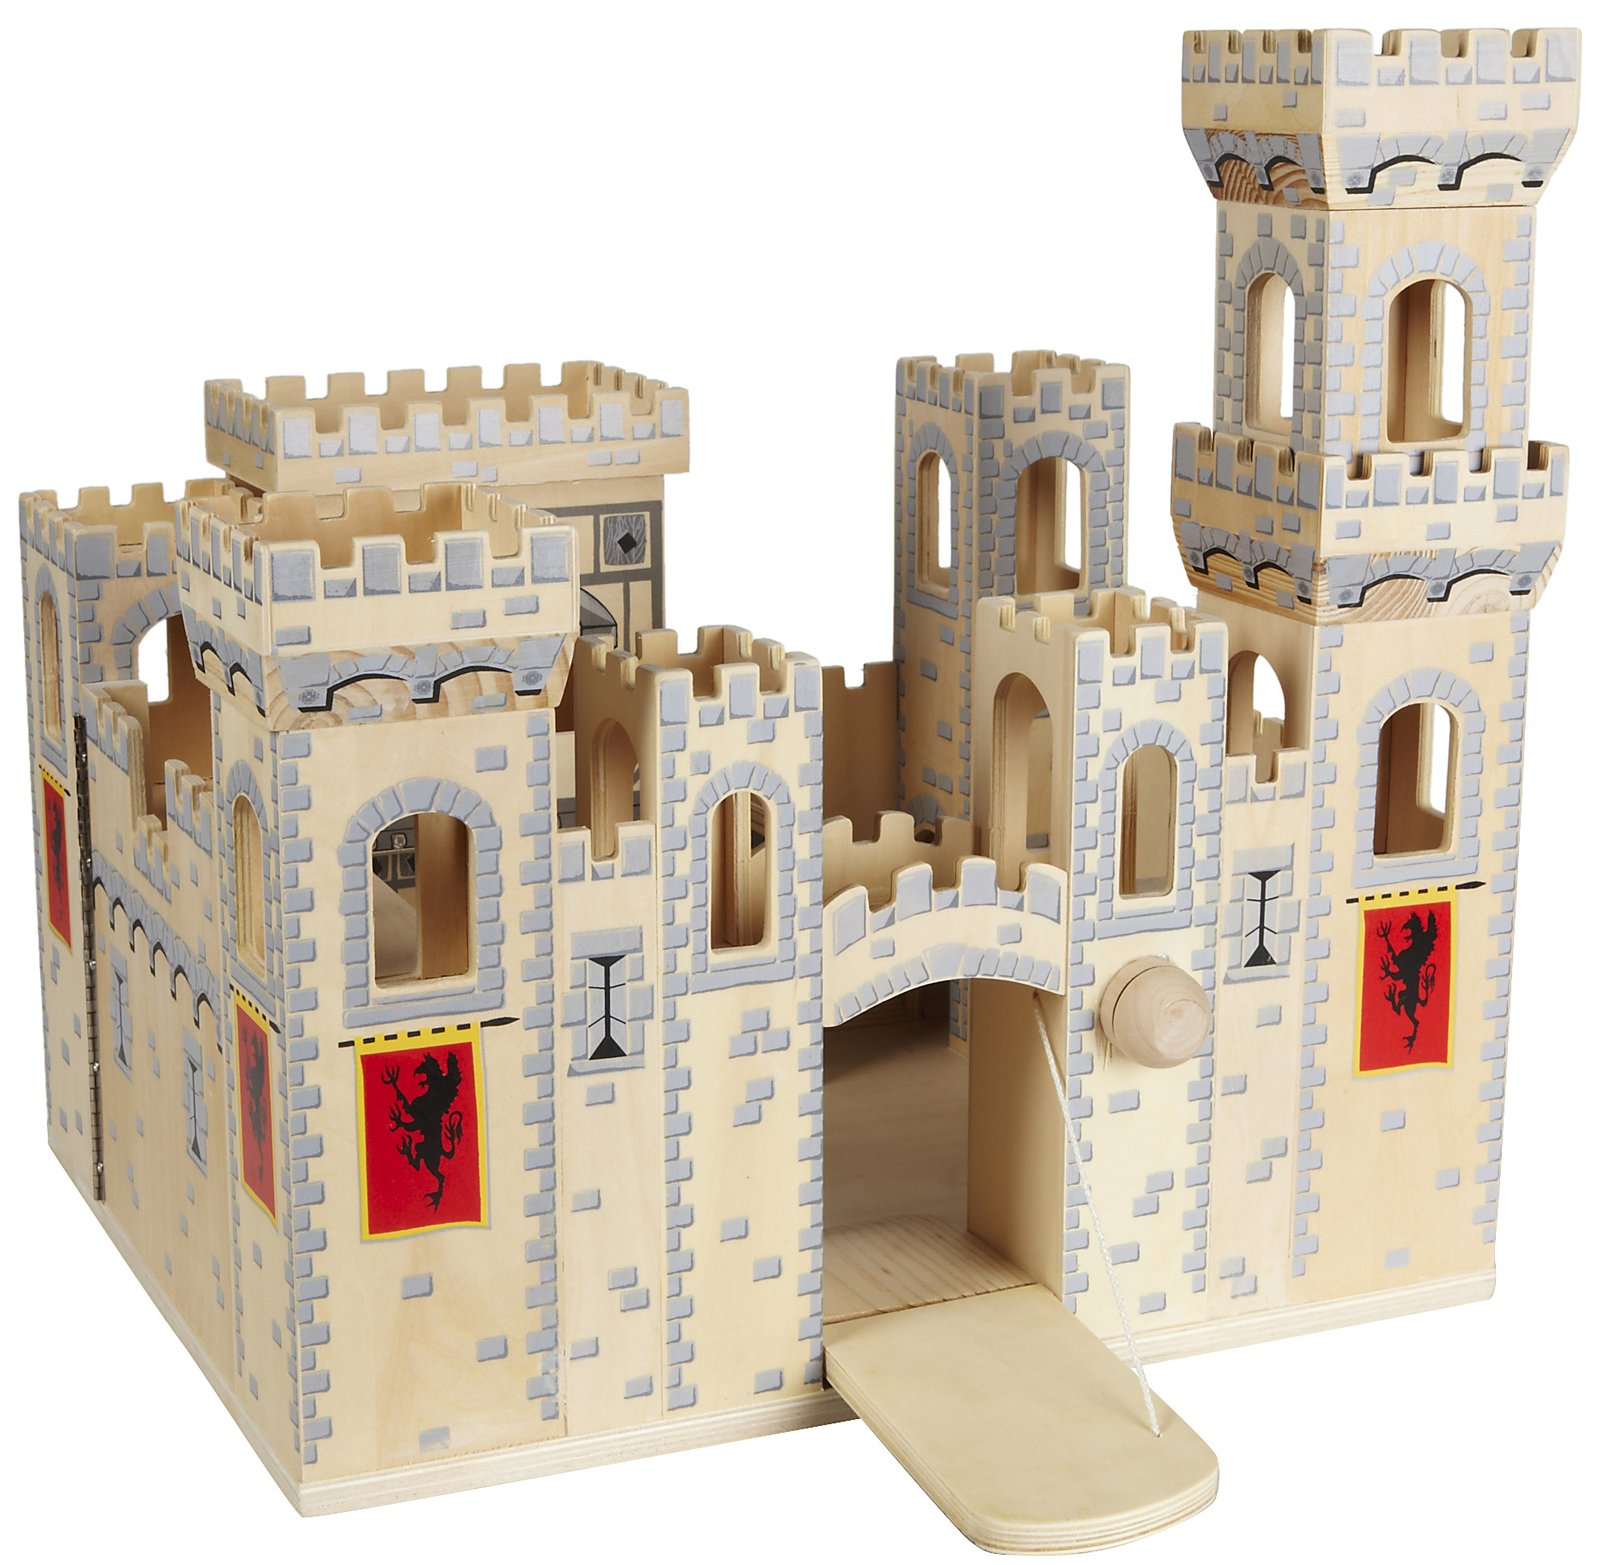 Toy Castles For Little Boys : Play castles for boys